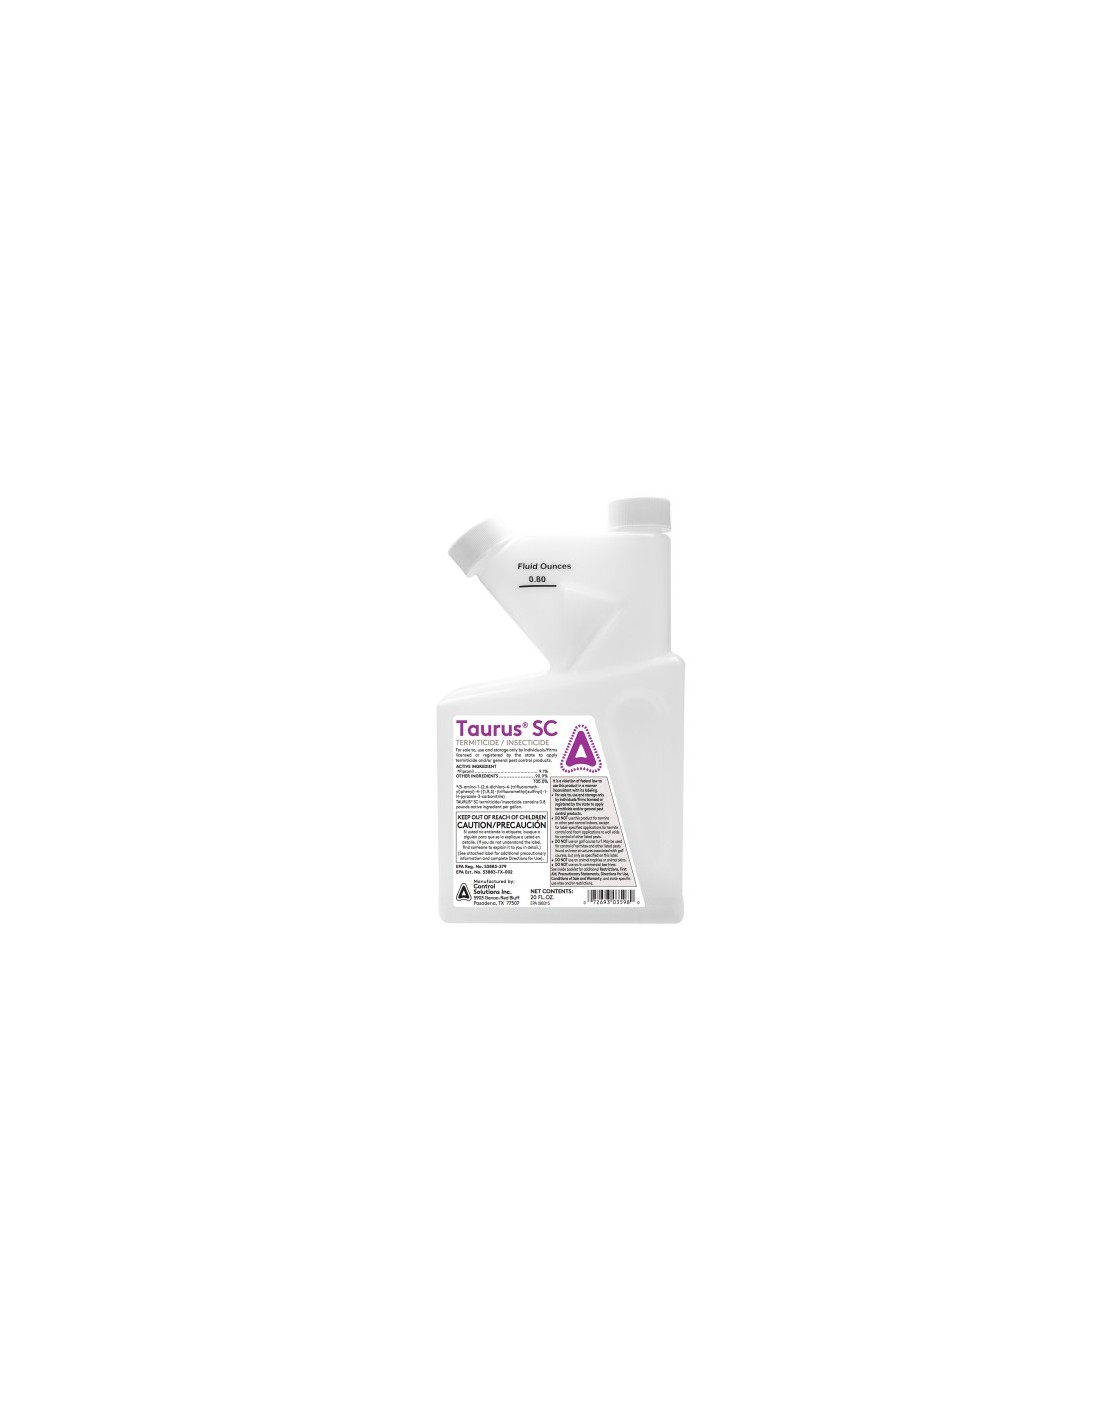 How long does Taurus sc last as a barrier around the foundation of a house?